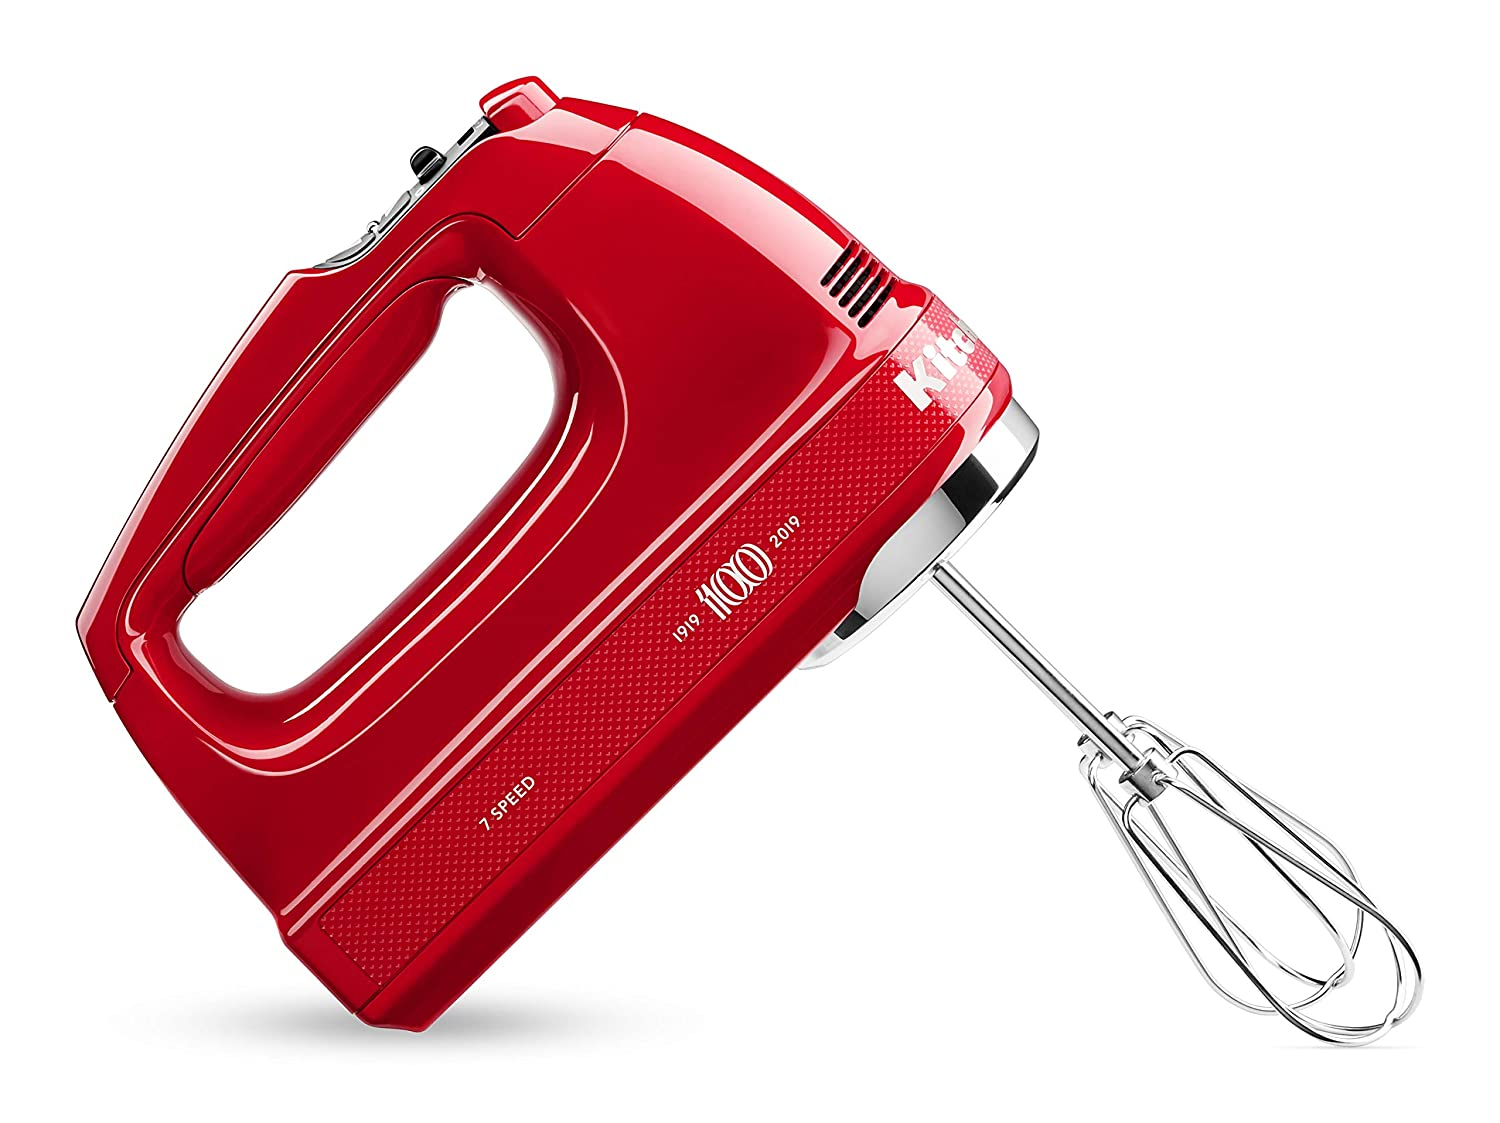 KitchenAid KHM7210QHSD 100 Year Limited Edition Queen of Hearts Hand Mixer, 7 Speed, Passion Red